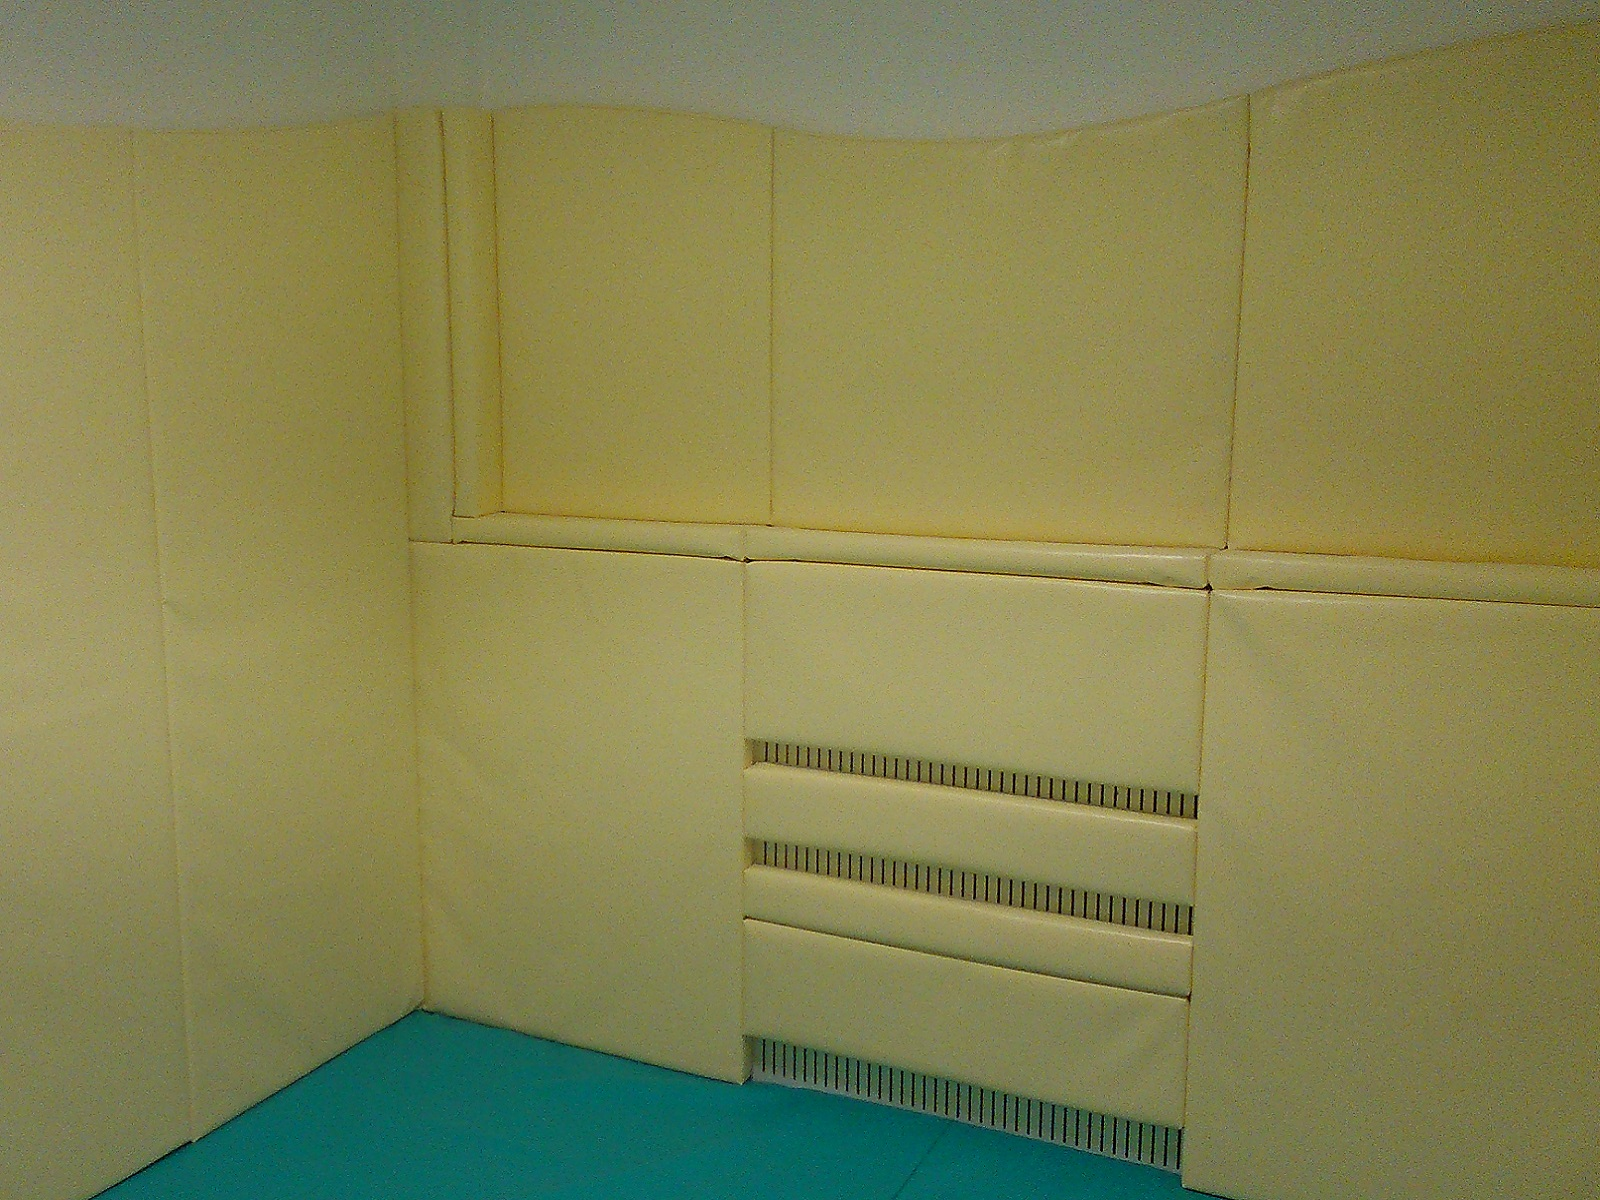 Wall And Floor Padding For Chill Out Room With Radiator Protection